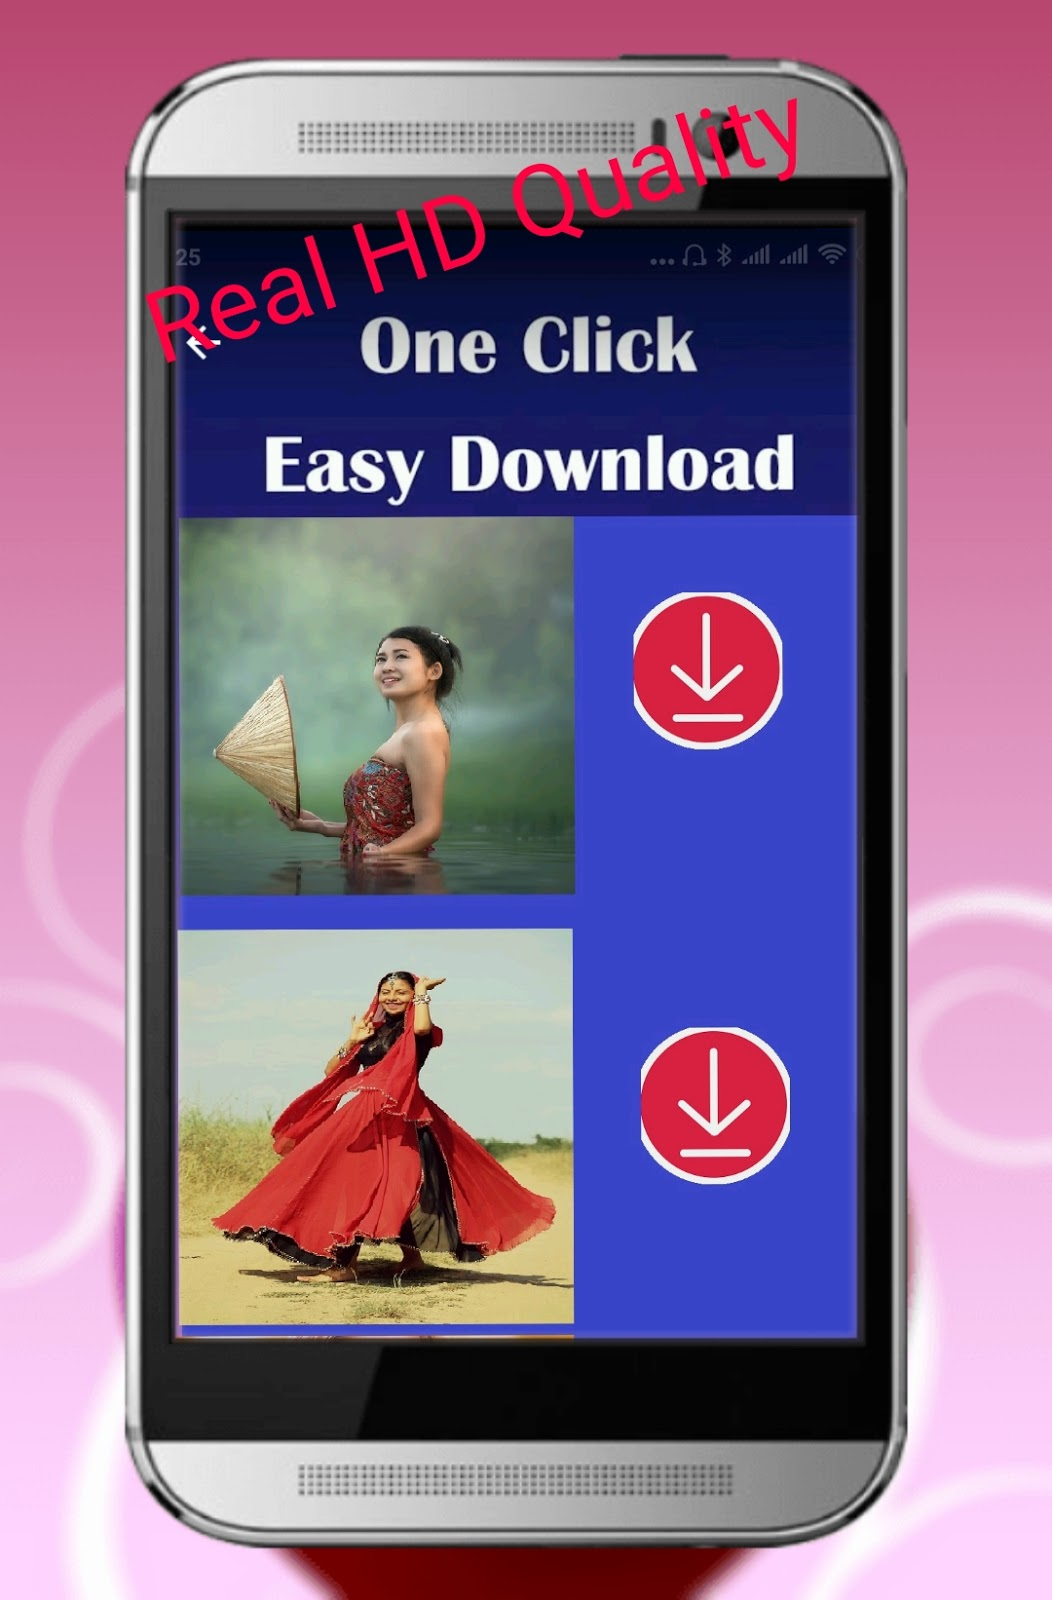 Download Video using your android mobile device ultra fast